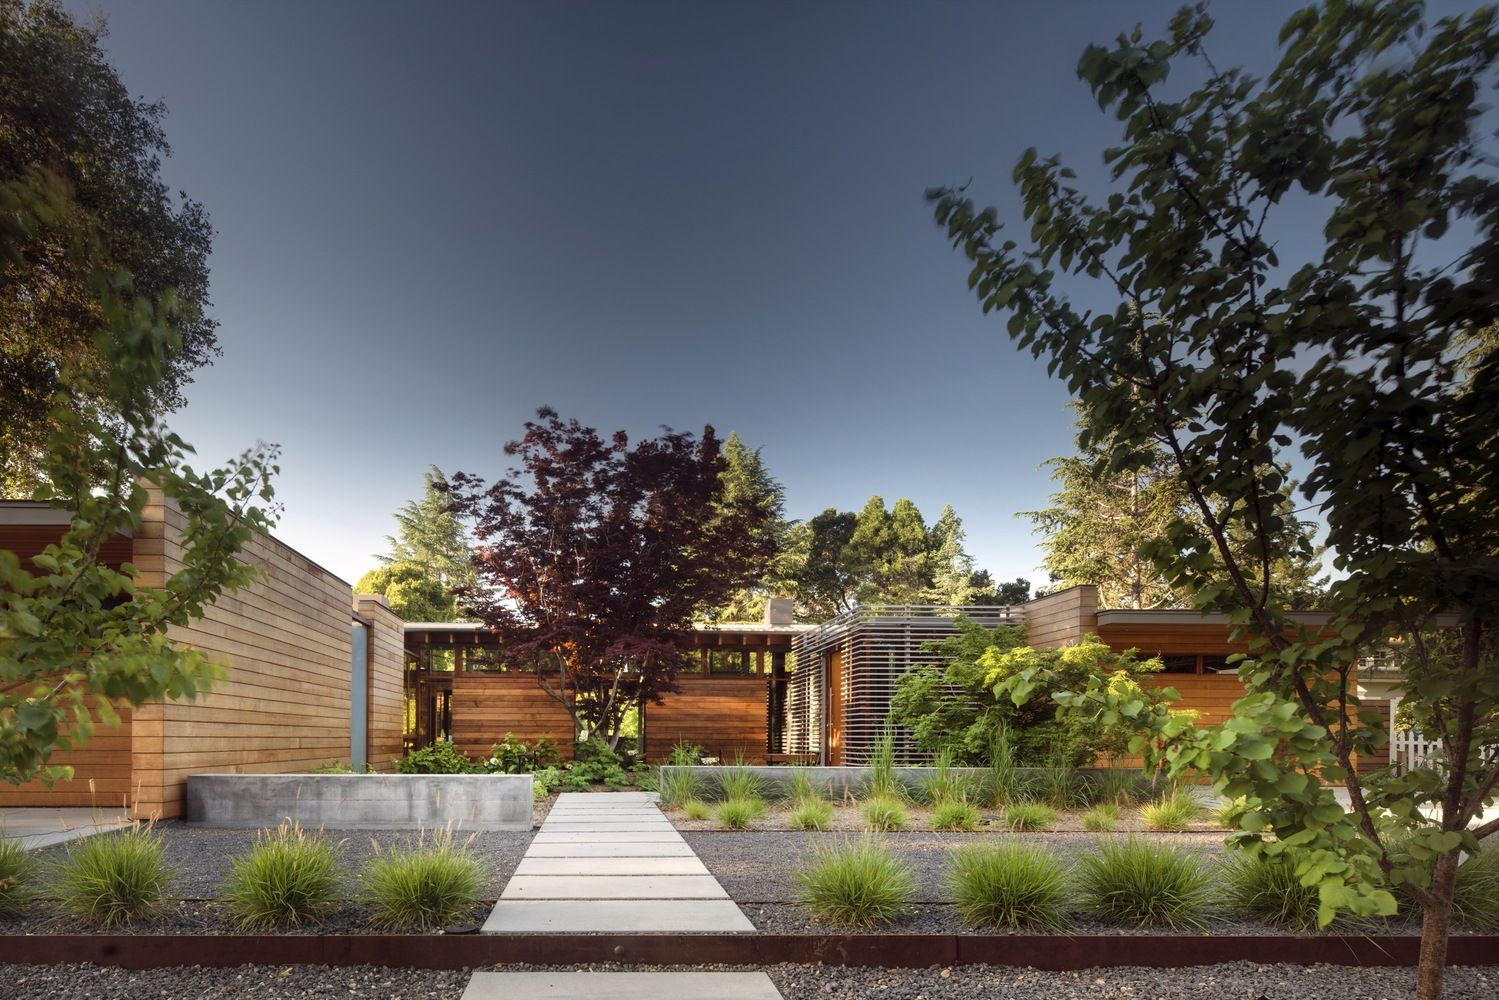 25 of the most beautiful california houses and their stories Modern ranch style homes